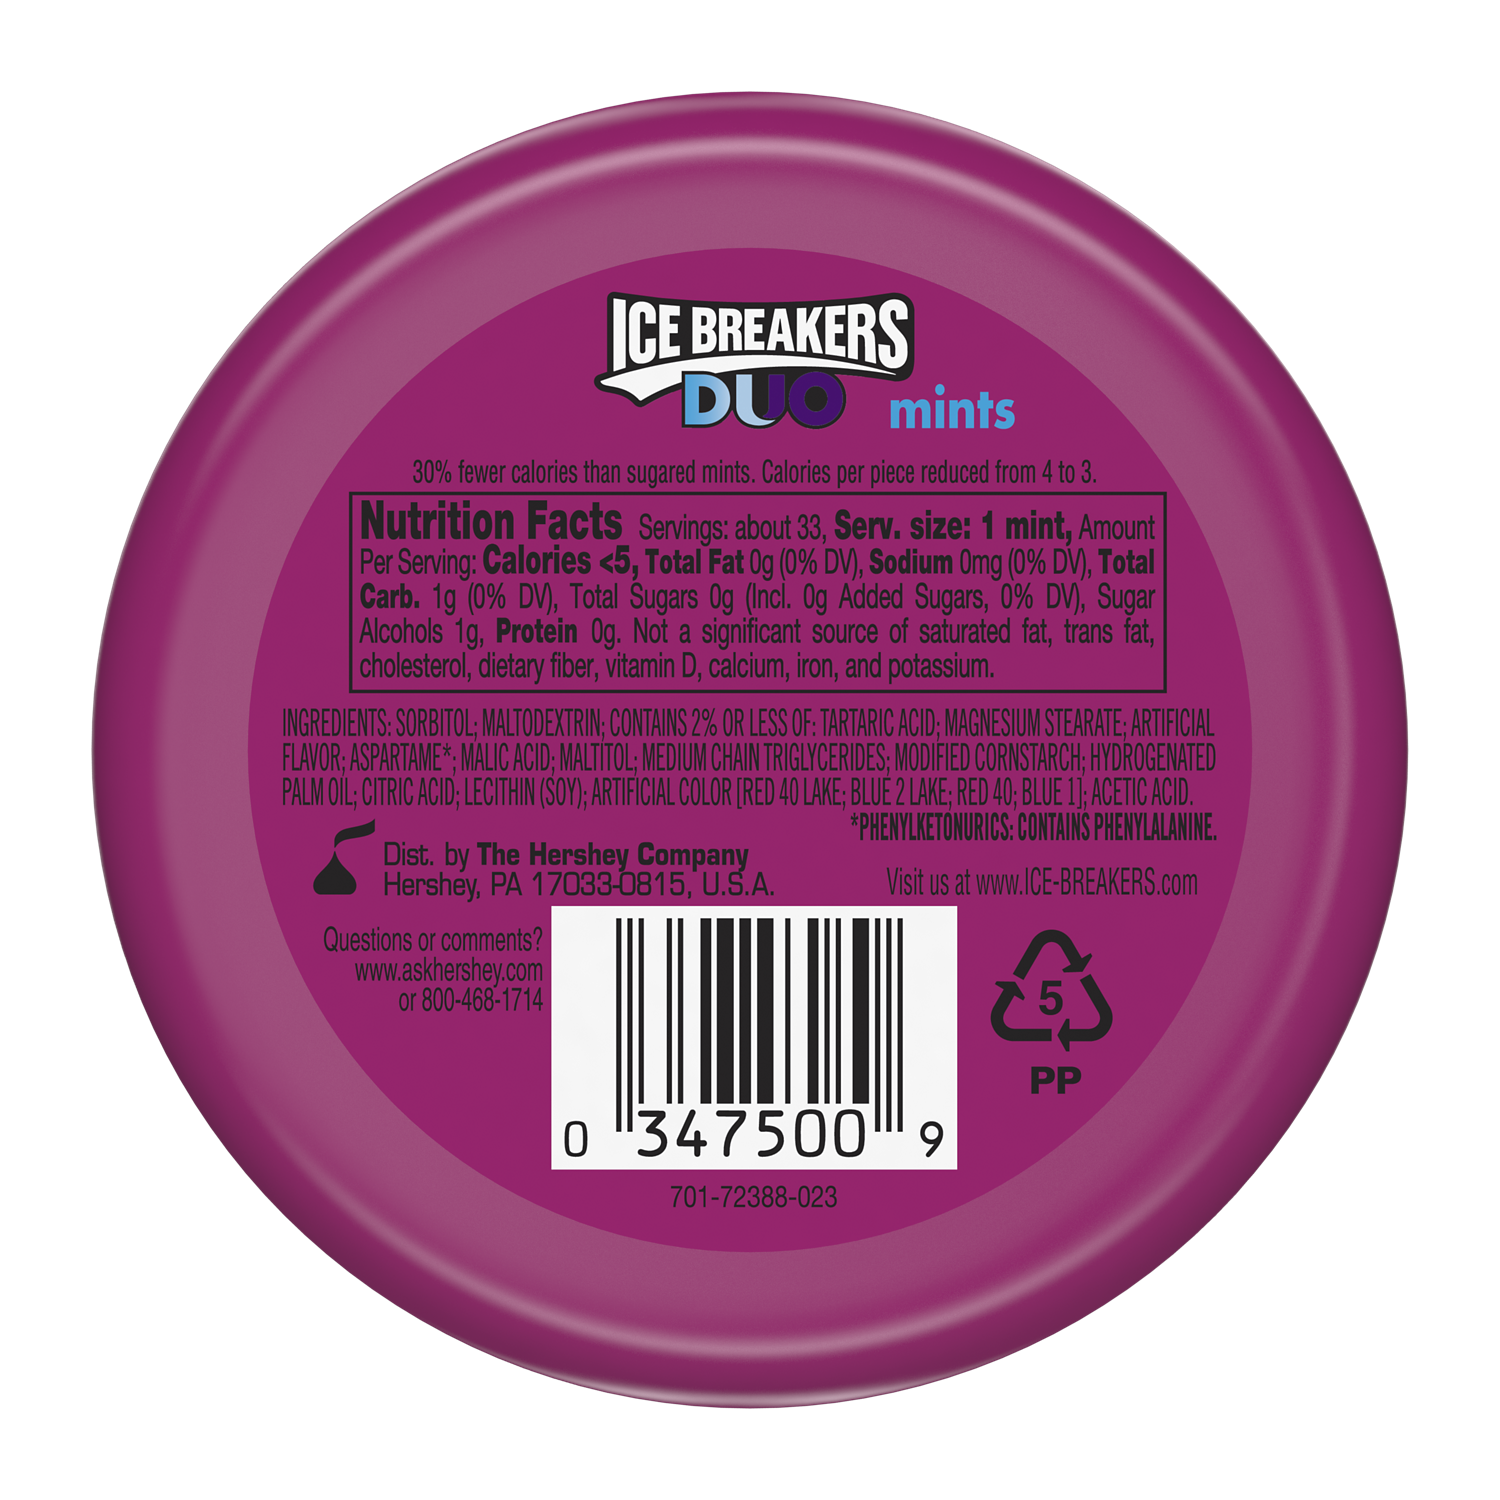 ICE BREAKERS DUO Grape Sugar Free Mints, 1.3 oz puck - Back of Package